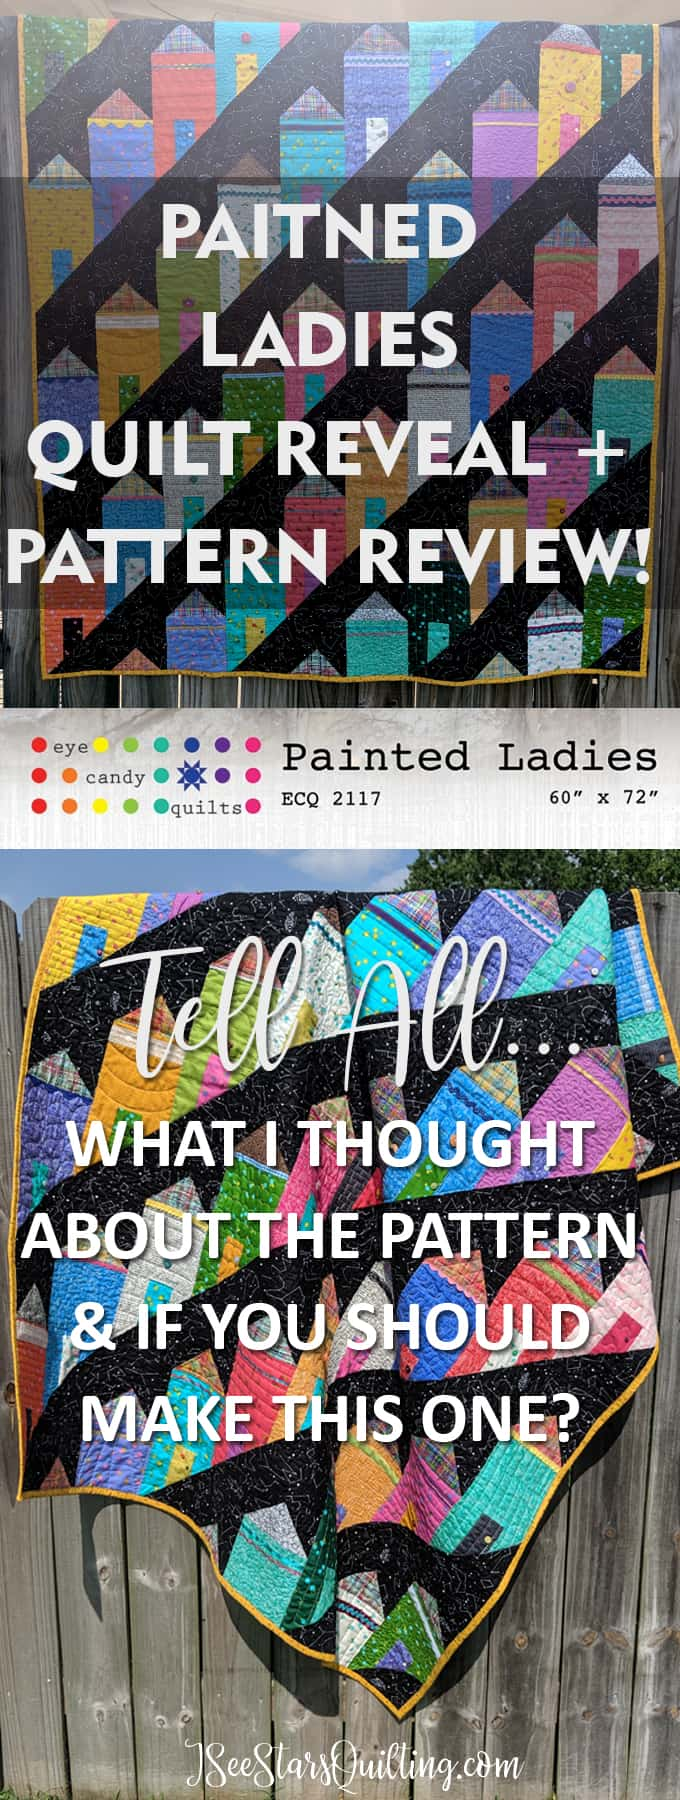 A full review of the Painted Ladies Quilt Pattern - what I liked and didn't like - as well as LOTS of photos of the finished quilt. Fabric Line is from Alison Glass